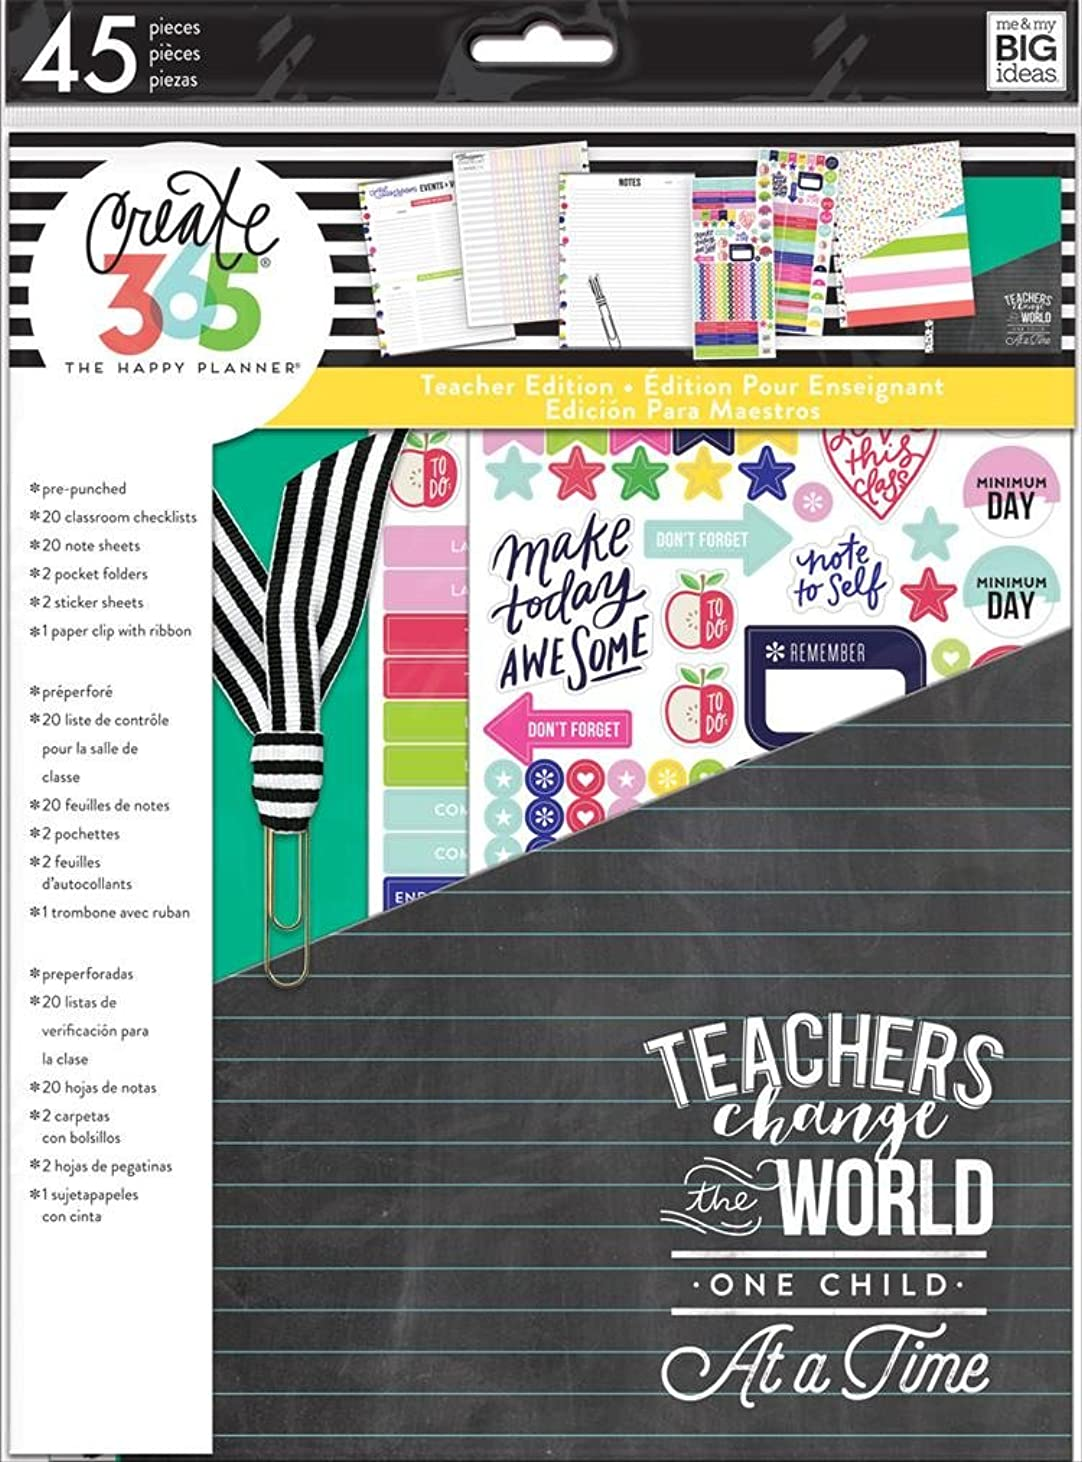 Create 365 The Happy Planner Back to School Teacher Accessory Pack Teachers Change the World (Fits BIG Sized Happy Planners) rjbmw482552